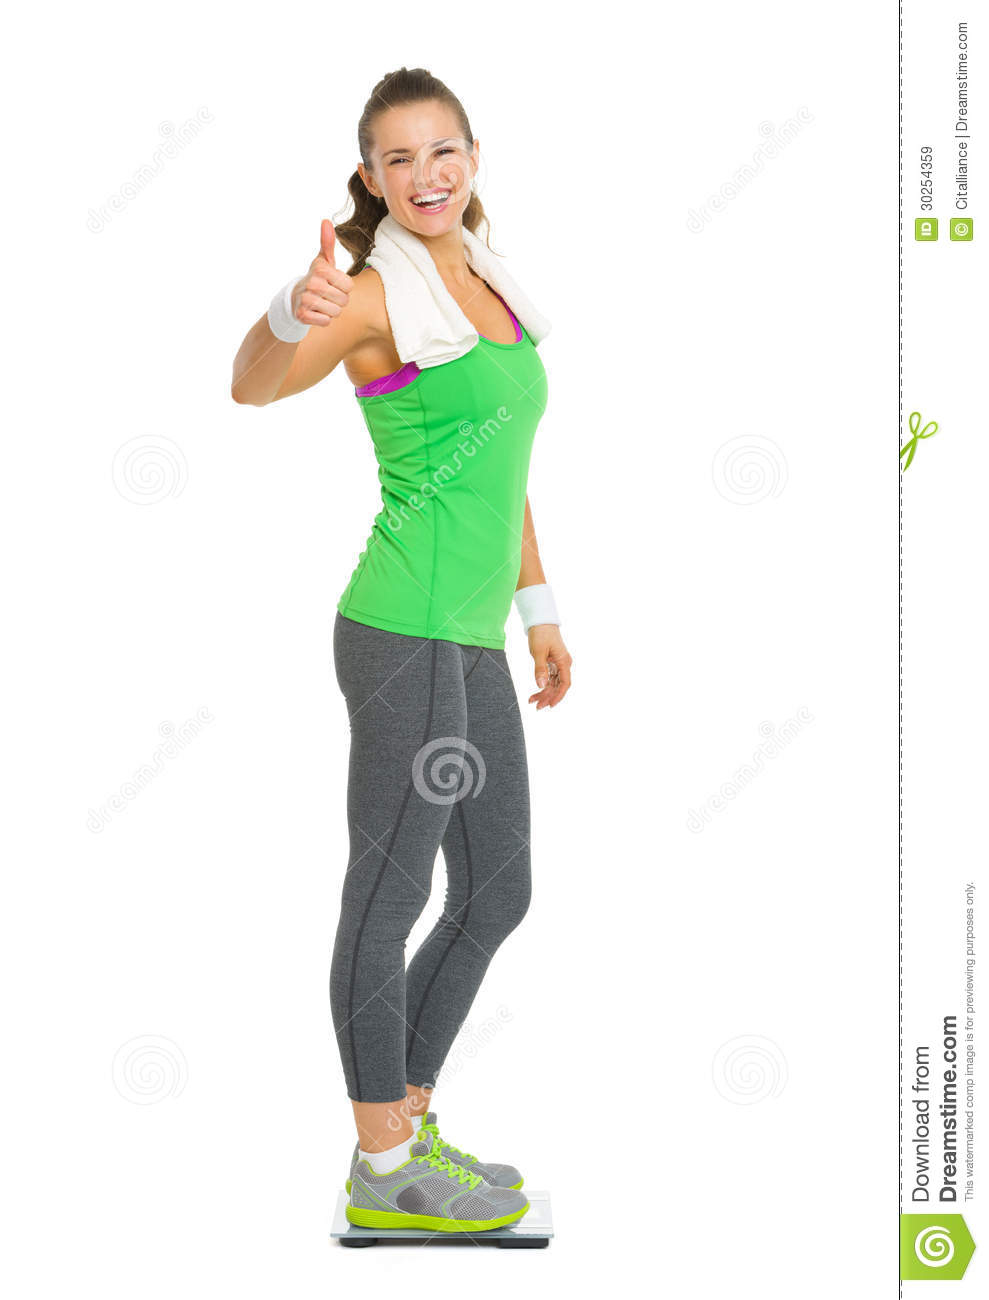 Smiling Fitness Young Woman Standing On Scales Stock Image ...